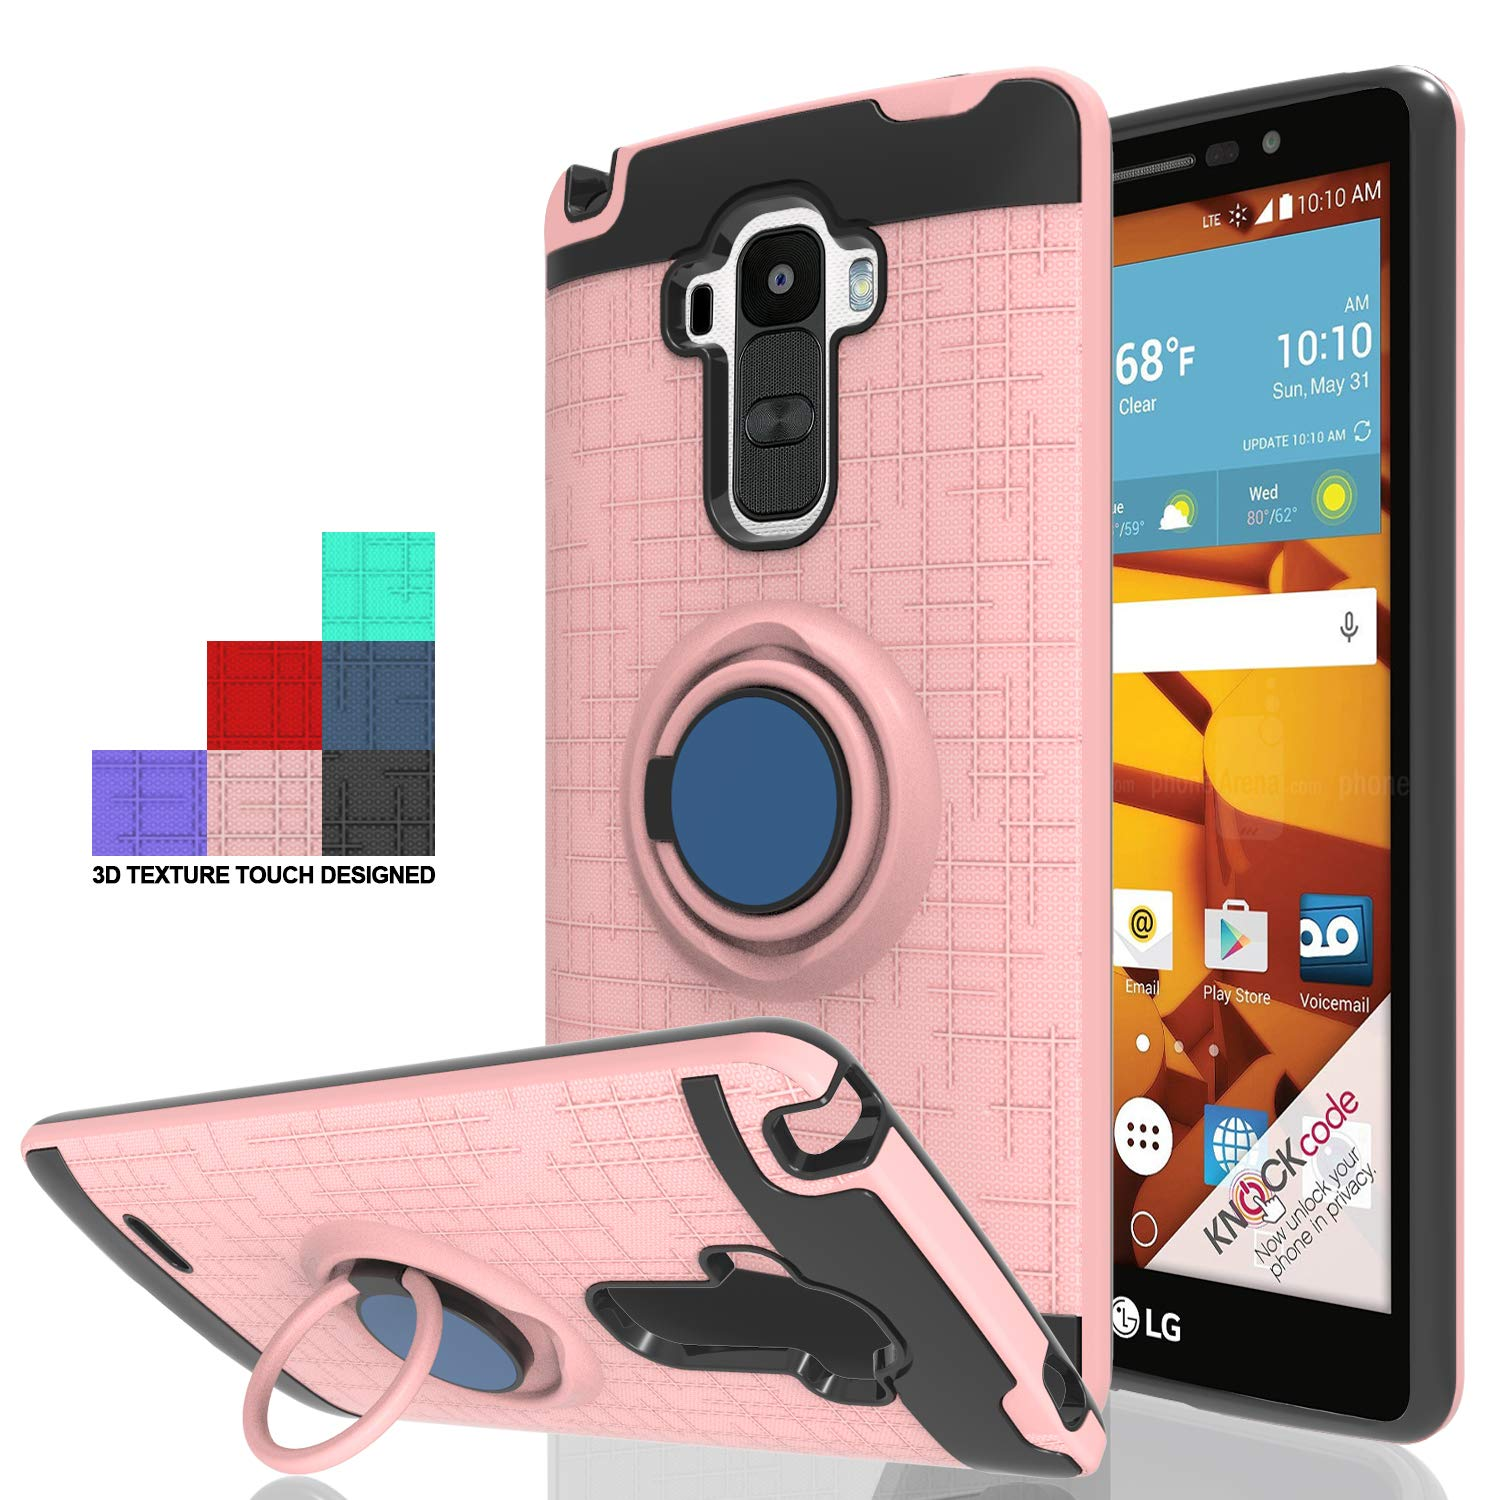 Wtiaw for:LG G Stylo Case,LG LS770 Case,LG G4 Stylus/G Stylo H631/G Stylo MS631 Case,360 Degree Rotating Ring Kickstand [TPU+PC Material] Hybrid Dual Layer Defender Case for LG LS770-CH Rose Gold